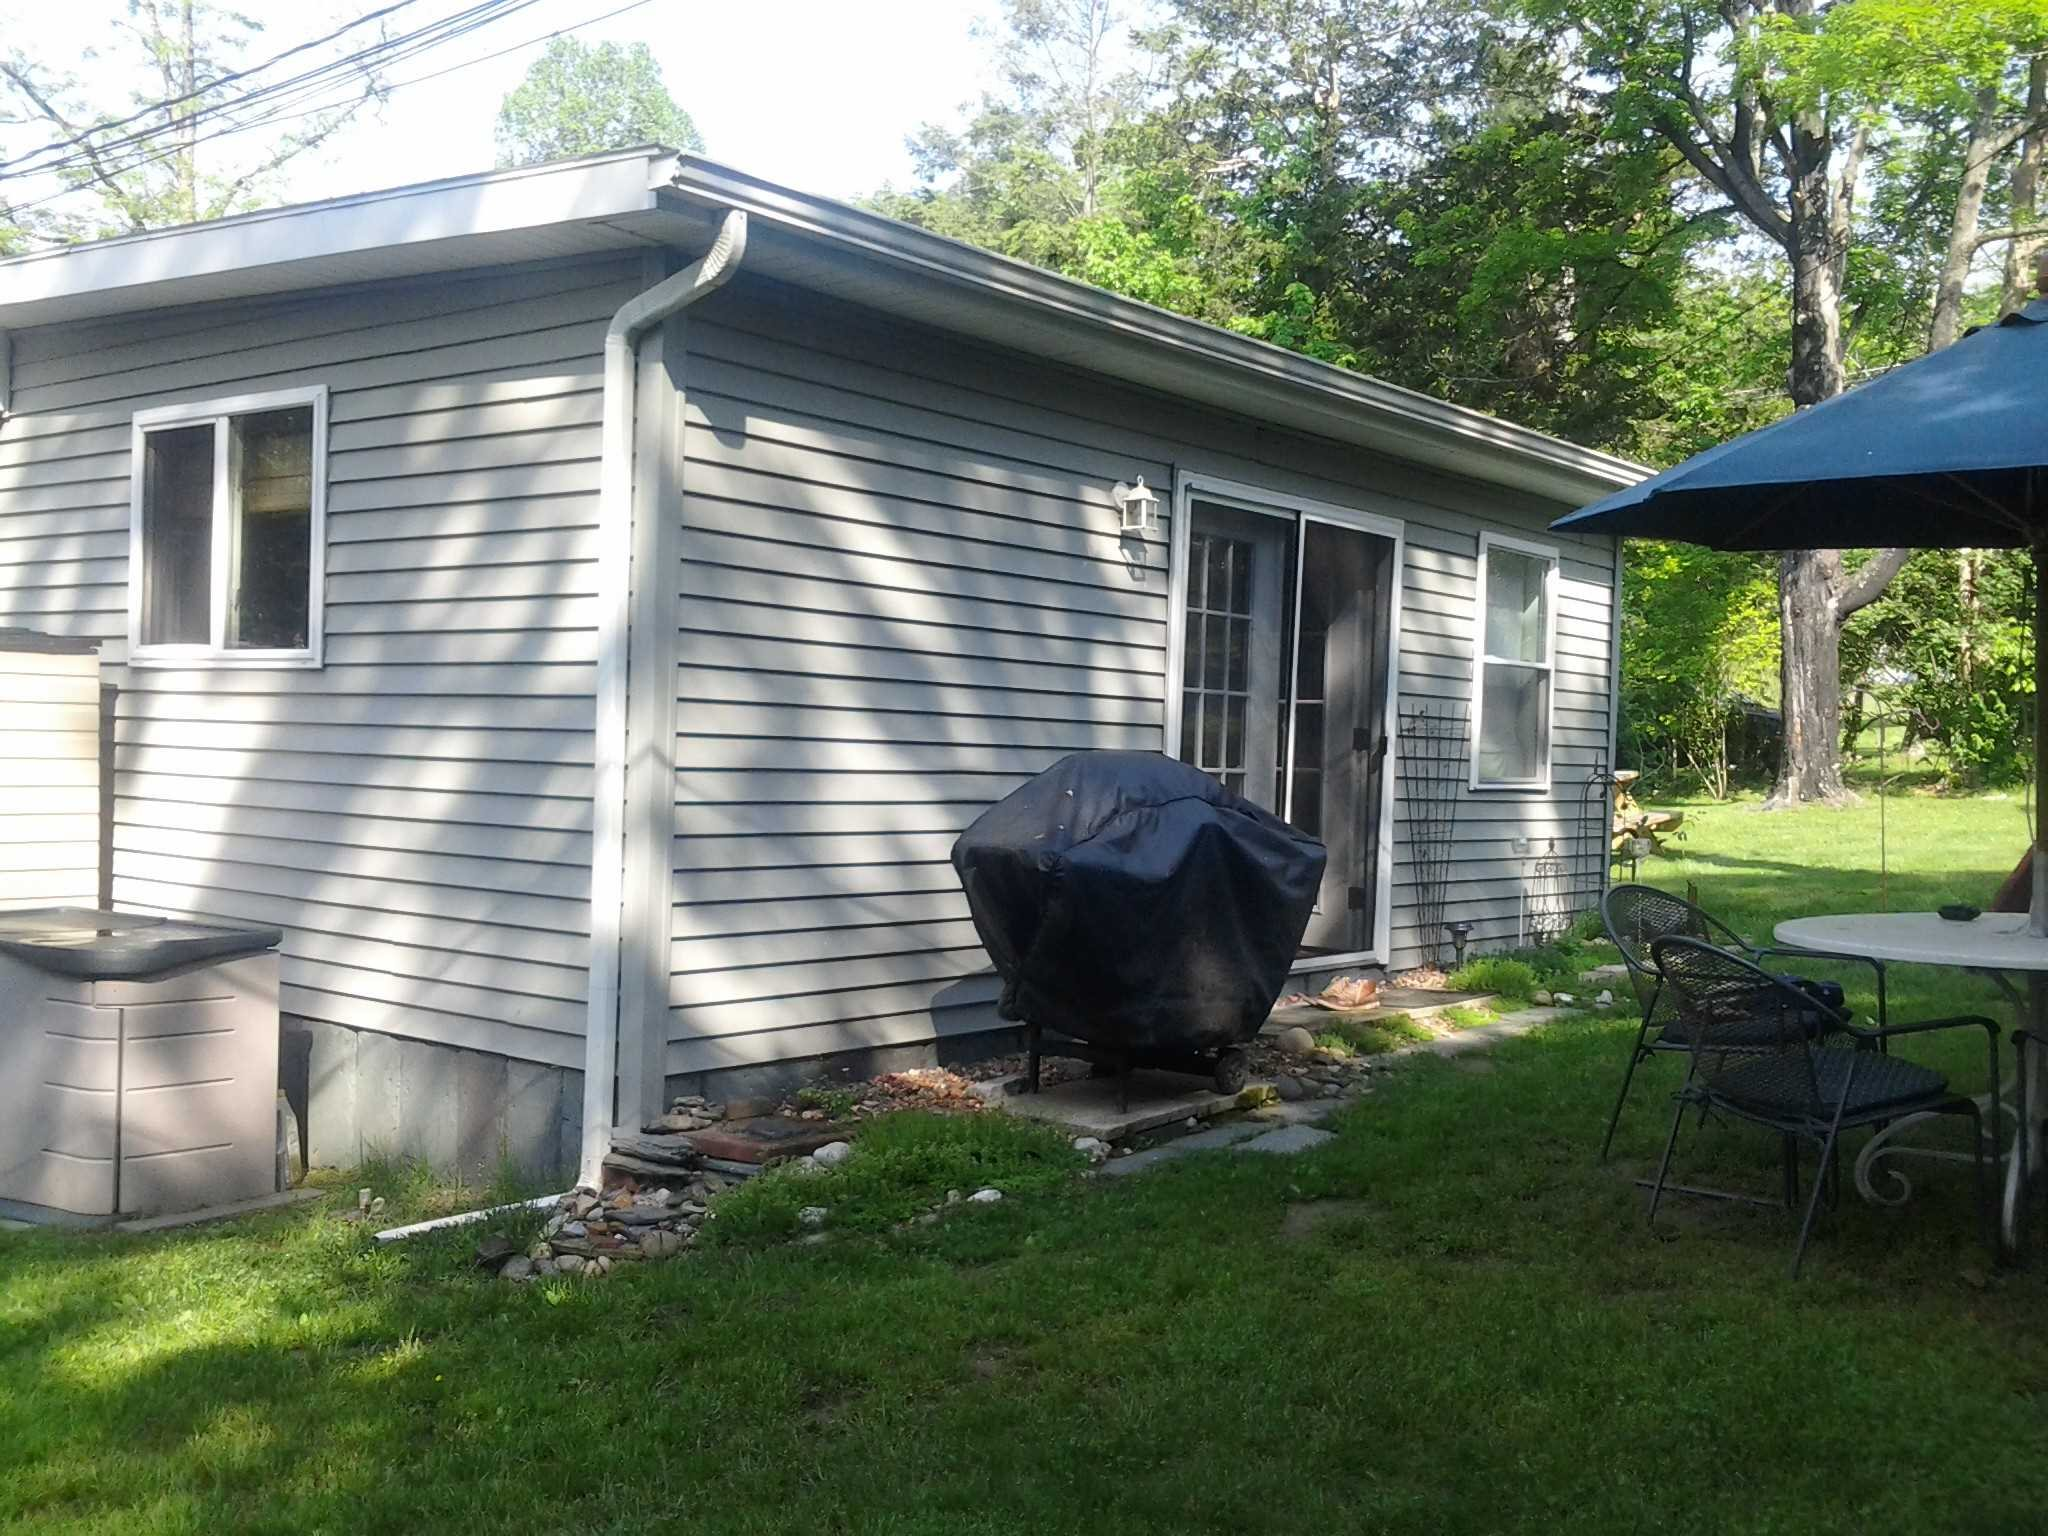 Single Family Home for Sale at 191 SYLVAN LAKE Road 191 SYLVAN LAKE Road Beekman, New York 12533 United States